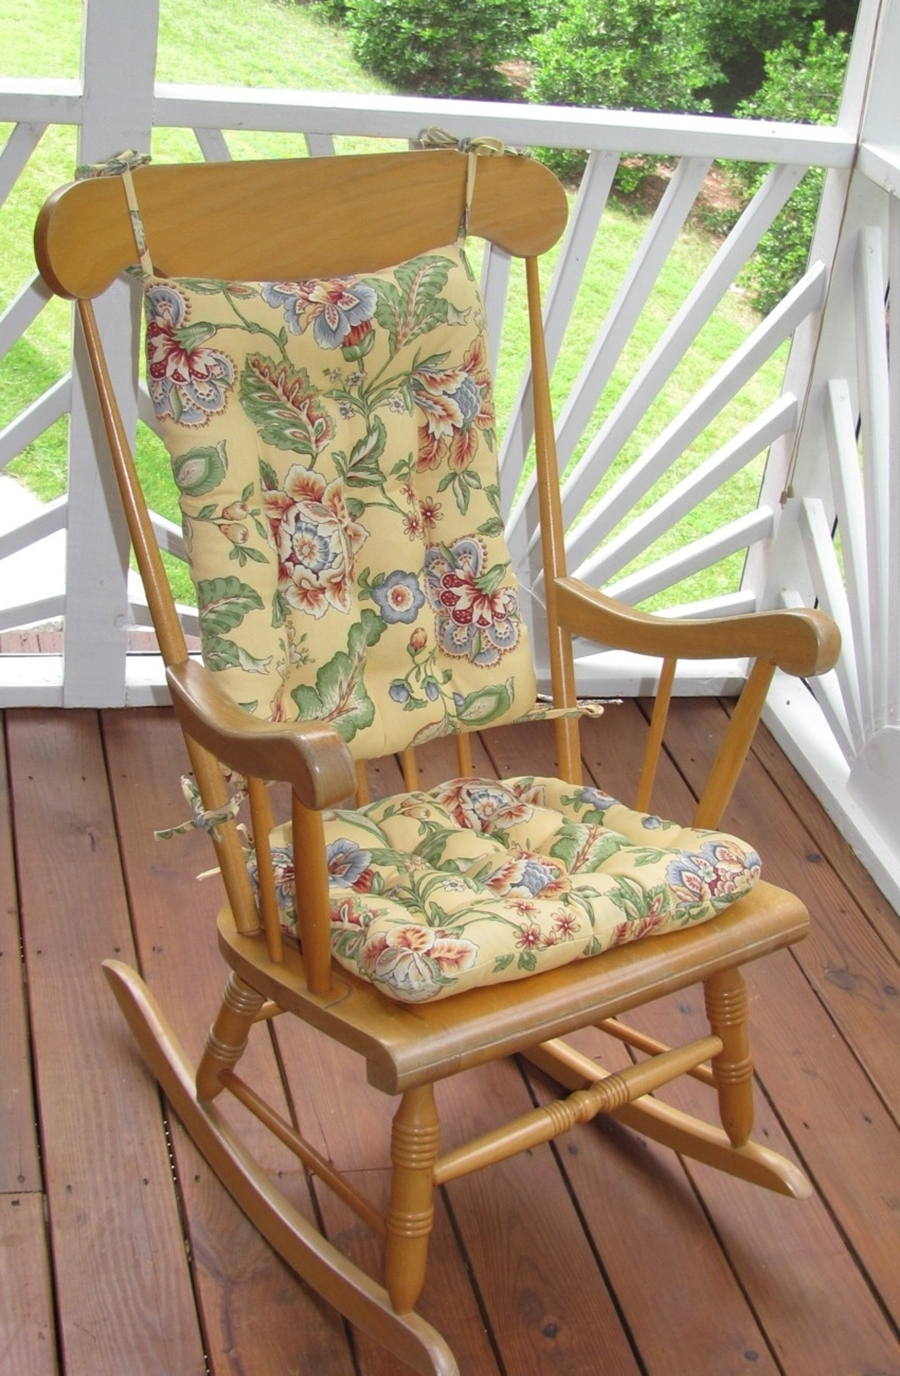 Well Known Rocking Chair Cushions For Outdoor For Outdoor Rocking Chair Cushions Theme — All Modern Rocking Chairs (View 14 of 15)